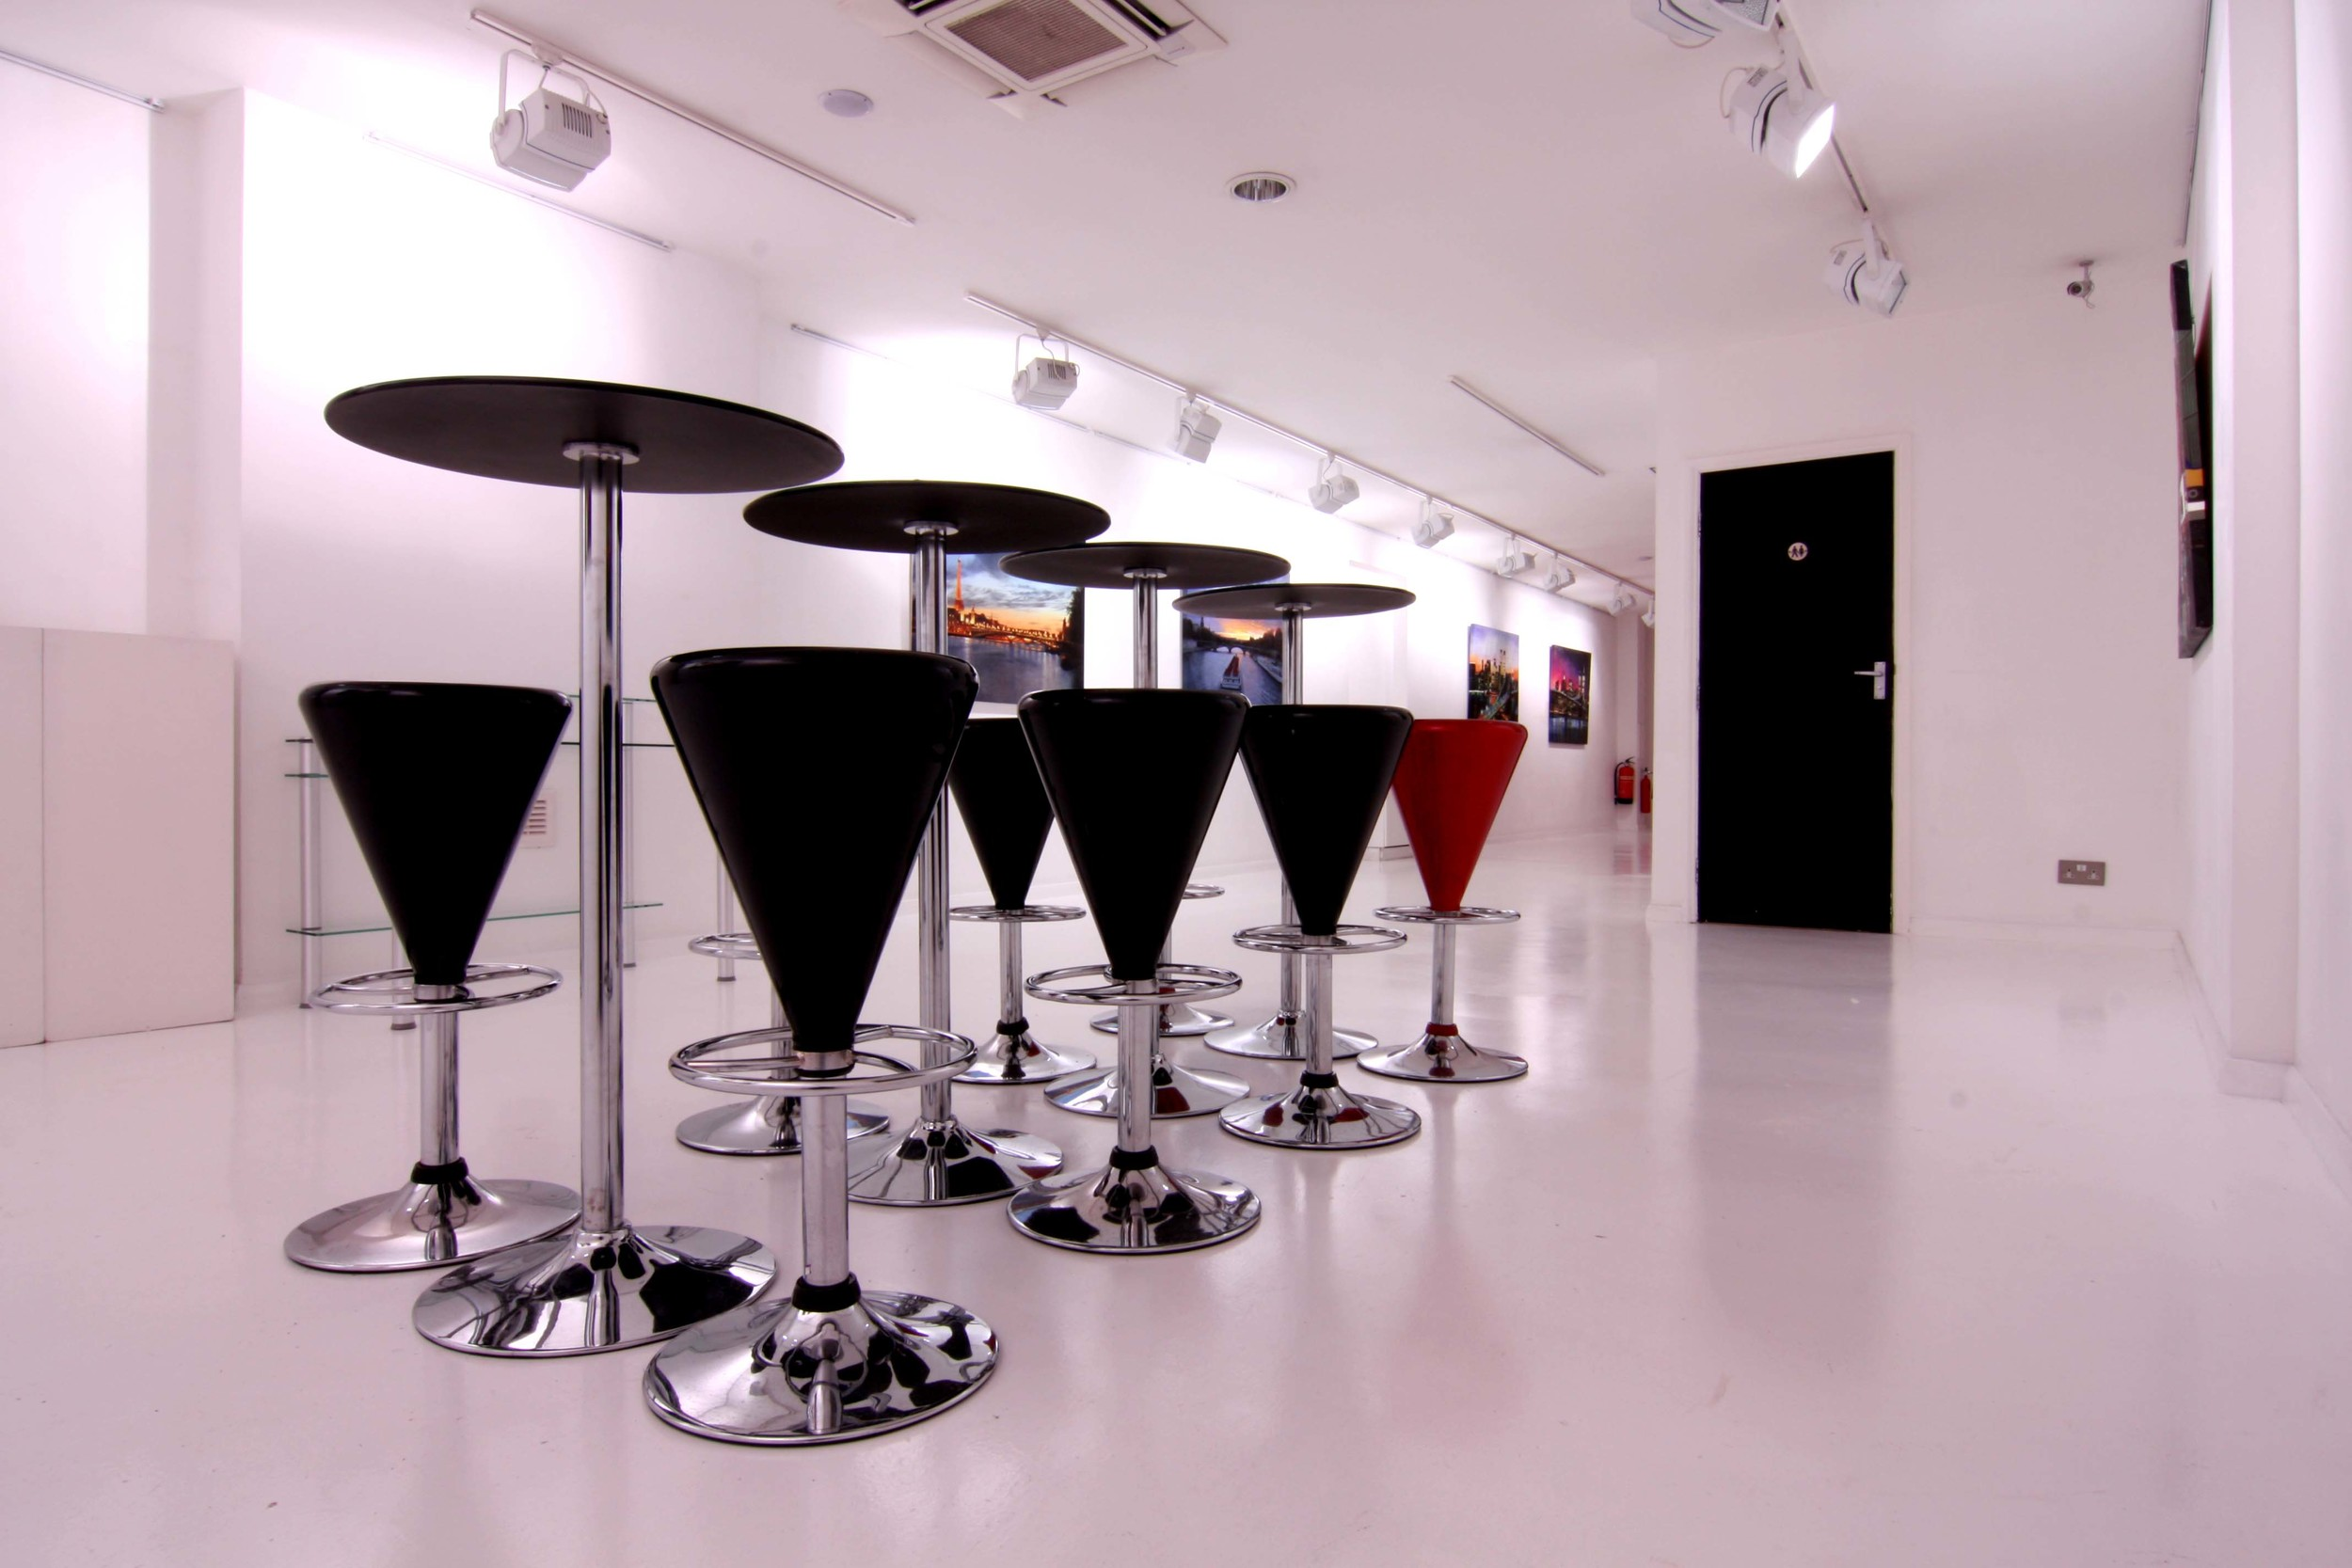 gallery pictures london 002.jpg